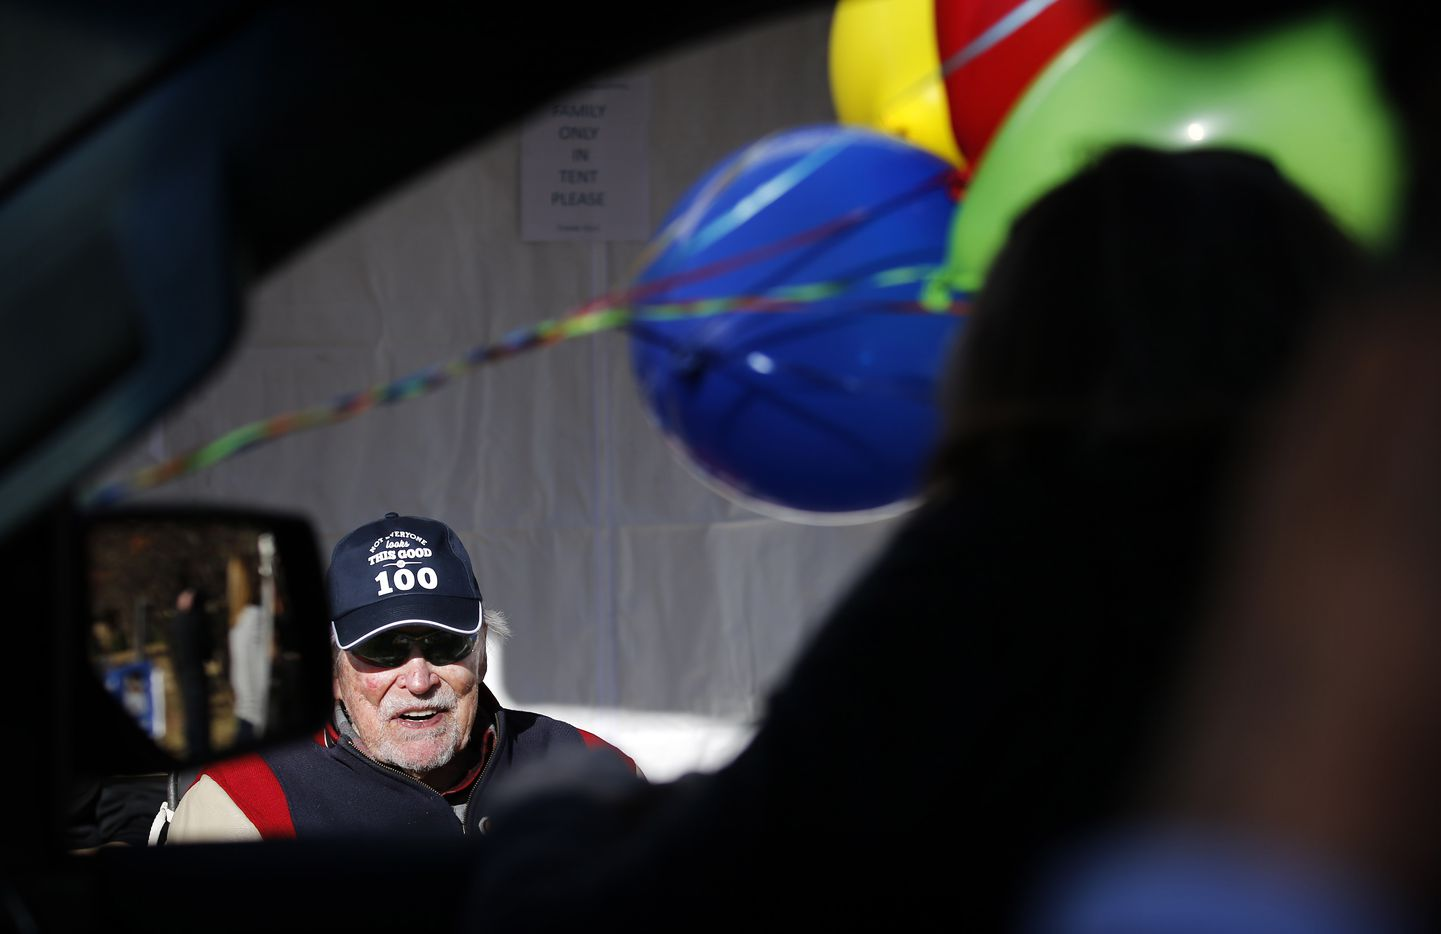 Eddie Robinson, the oldest living former MLB player, visits with friends who delivery an early 100th birthday wish with balloons. He will turn 100 on December 15th. To share his birthday with friends, his family orchestrated a drive-by celebration outside his Fort Worth home, Saturday, December 12, 2020. His 65 year career started by playing for the Cleveland Indians and serving in World War II. Later he went on to play for several other teams before presiding over three winning seasons as the Texas Rangers general manager. He is still in great physical health as he waves to passersby, including former teammates, GM Tom Grieve and U.S. congressman and neighbor Marc Veasey. (Tom Fox/The Dallas Morning News)